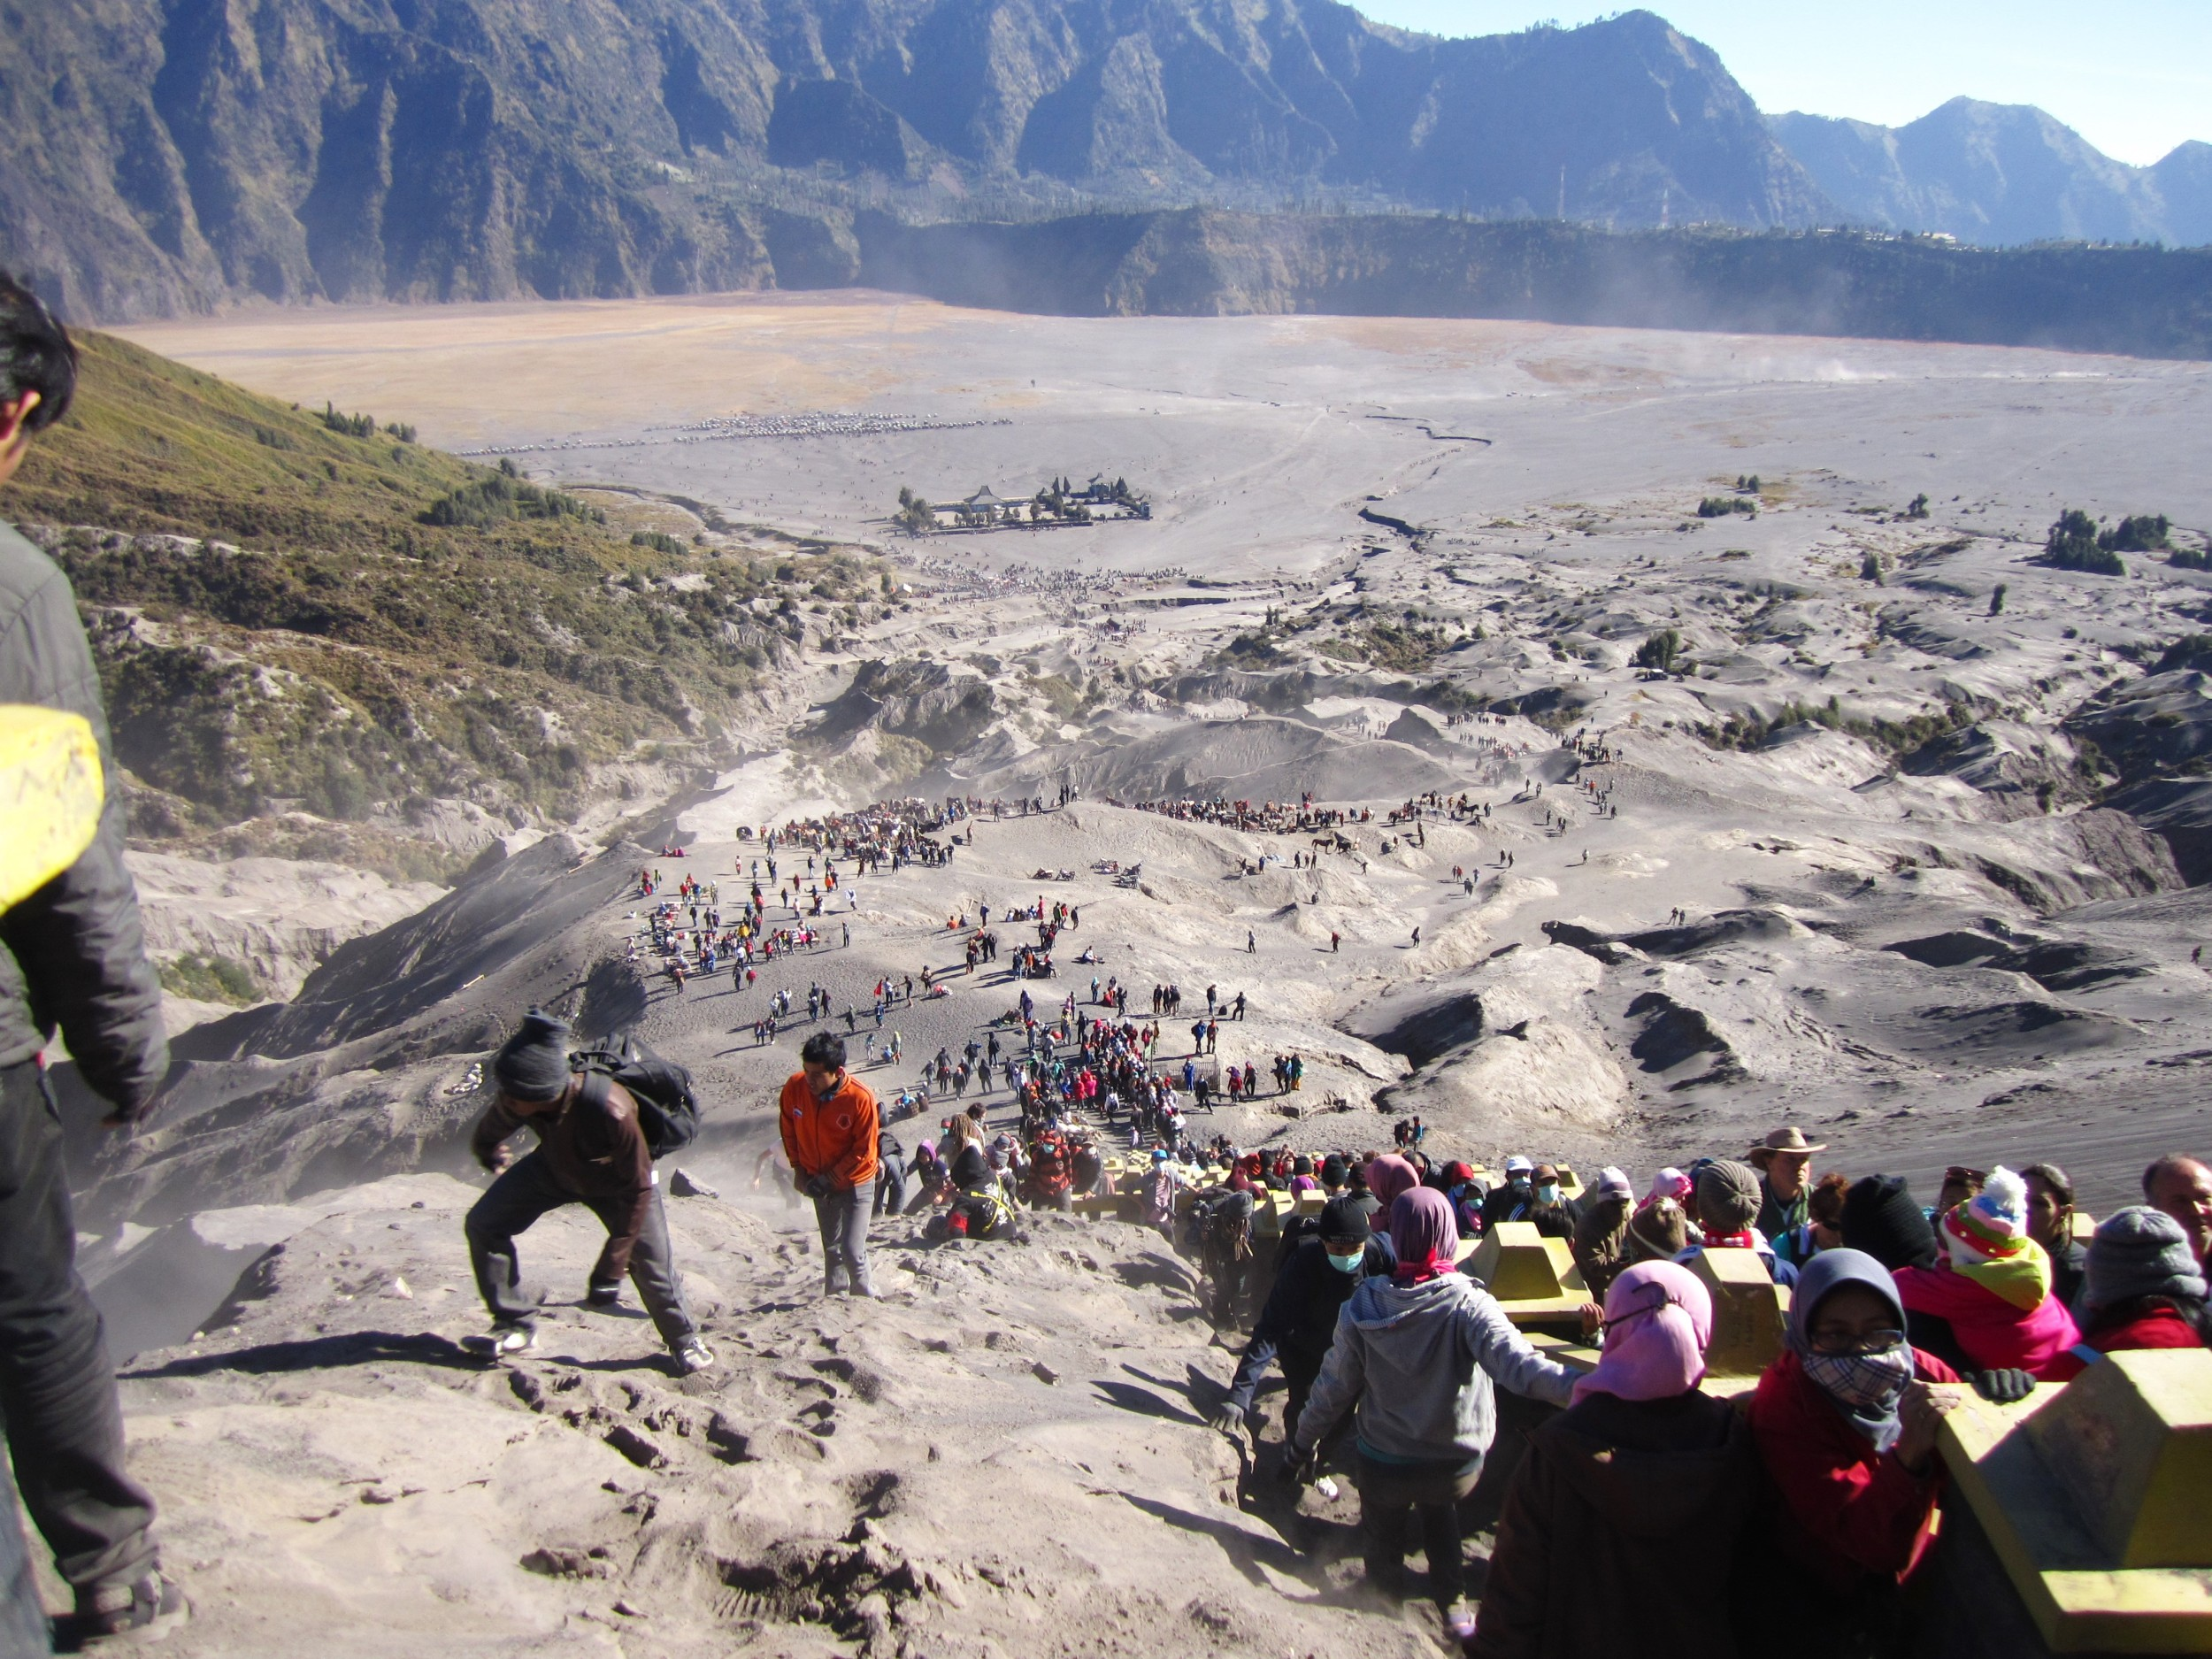 Hundreds of tourists climbing Mt. Bromo through The Tengger Sand Sea